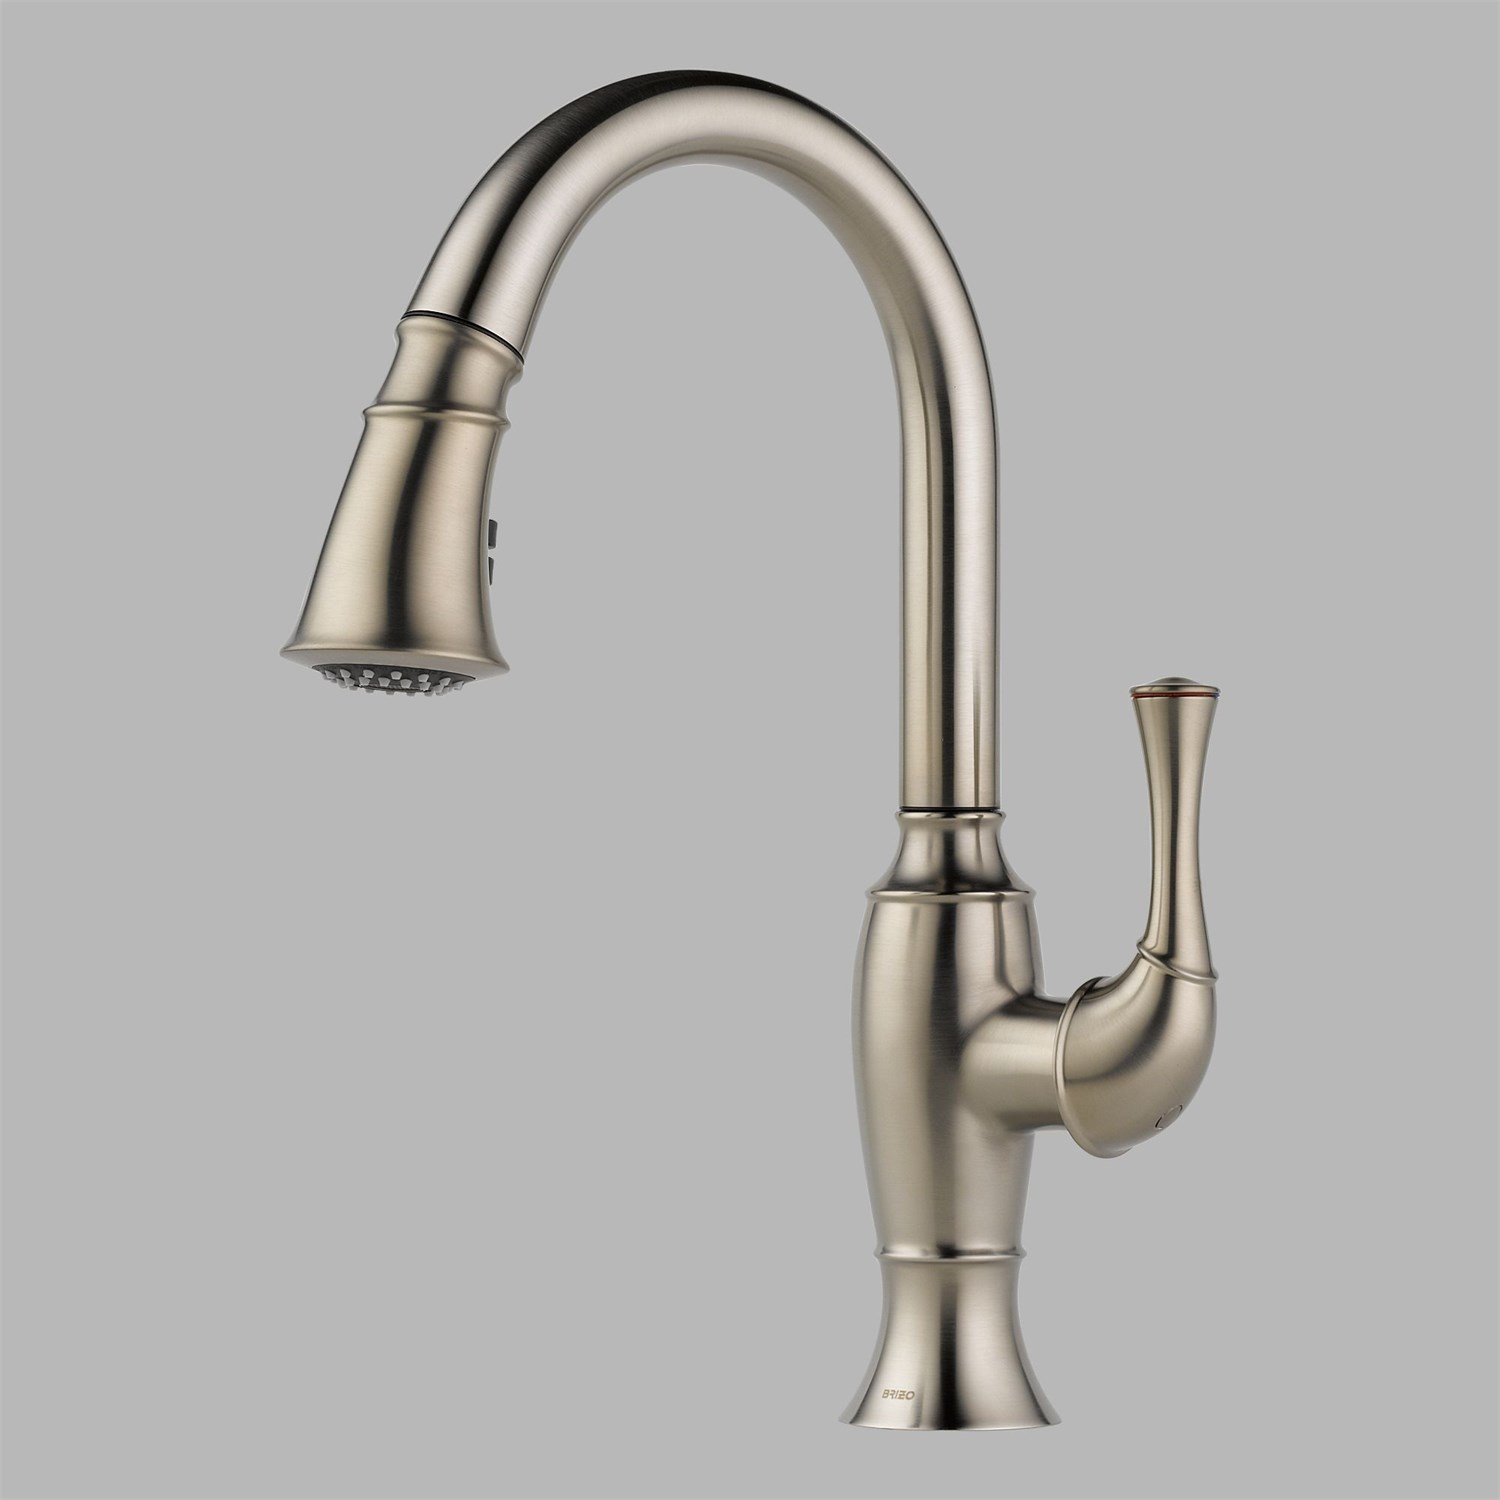 solna faucet high end bathroom sink faucets brizo kitchen faucets brizo shower systems polished nickel bridge kitchen faucet touch bathroom faucet brizo shower brio kitchen single hole kitc